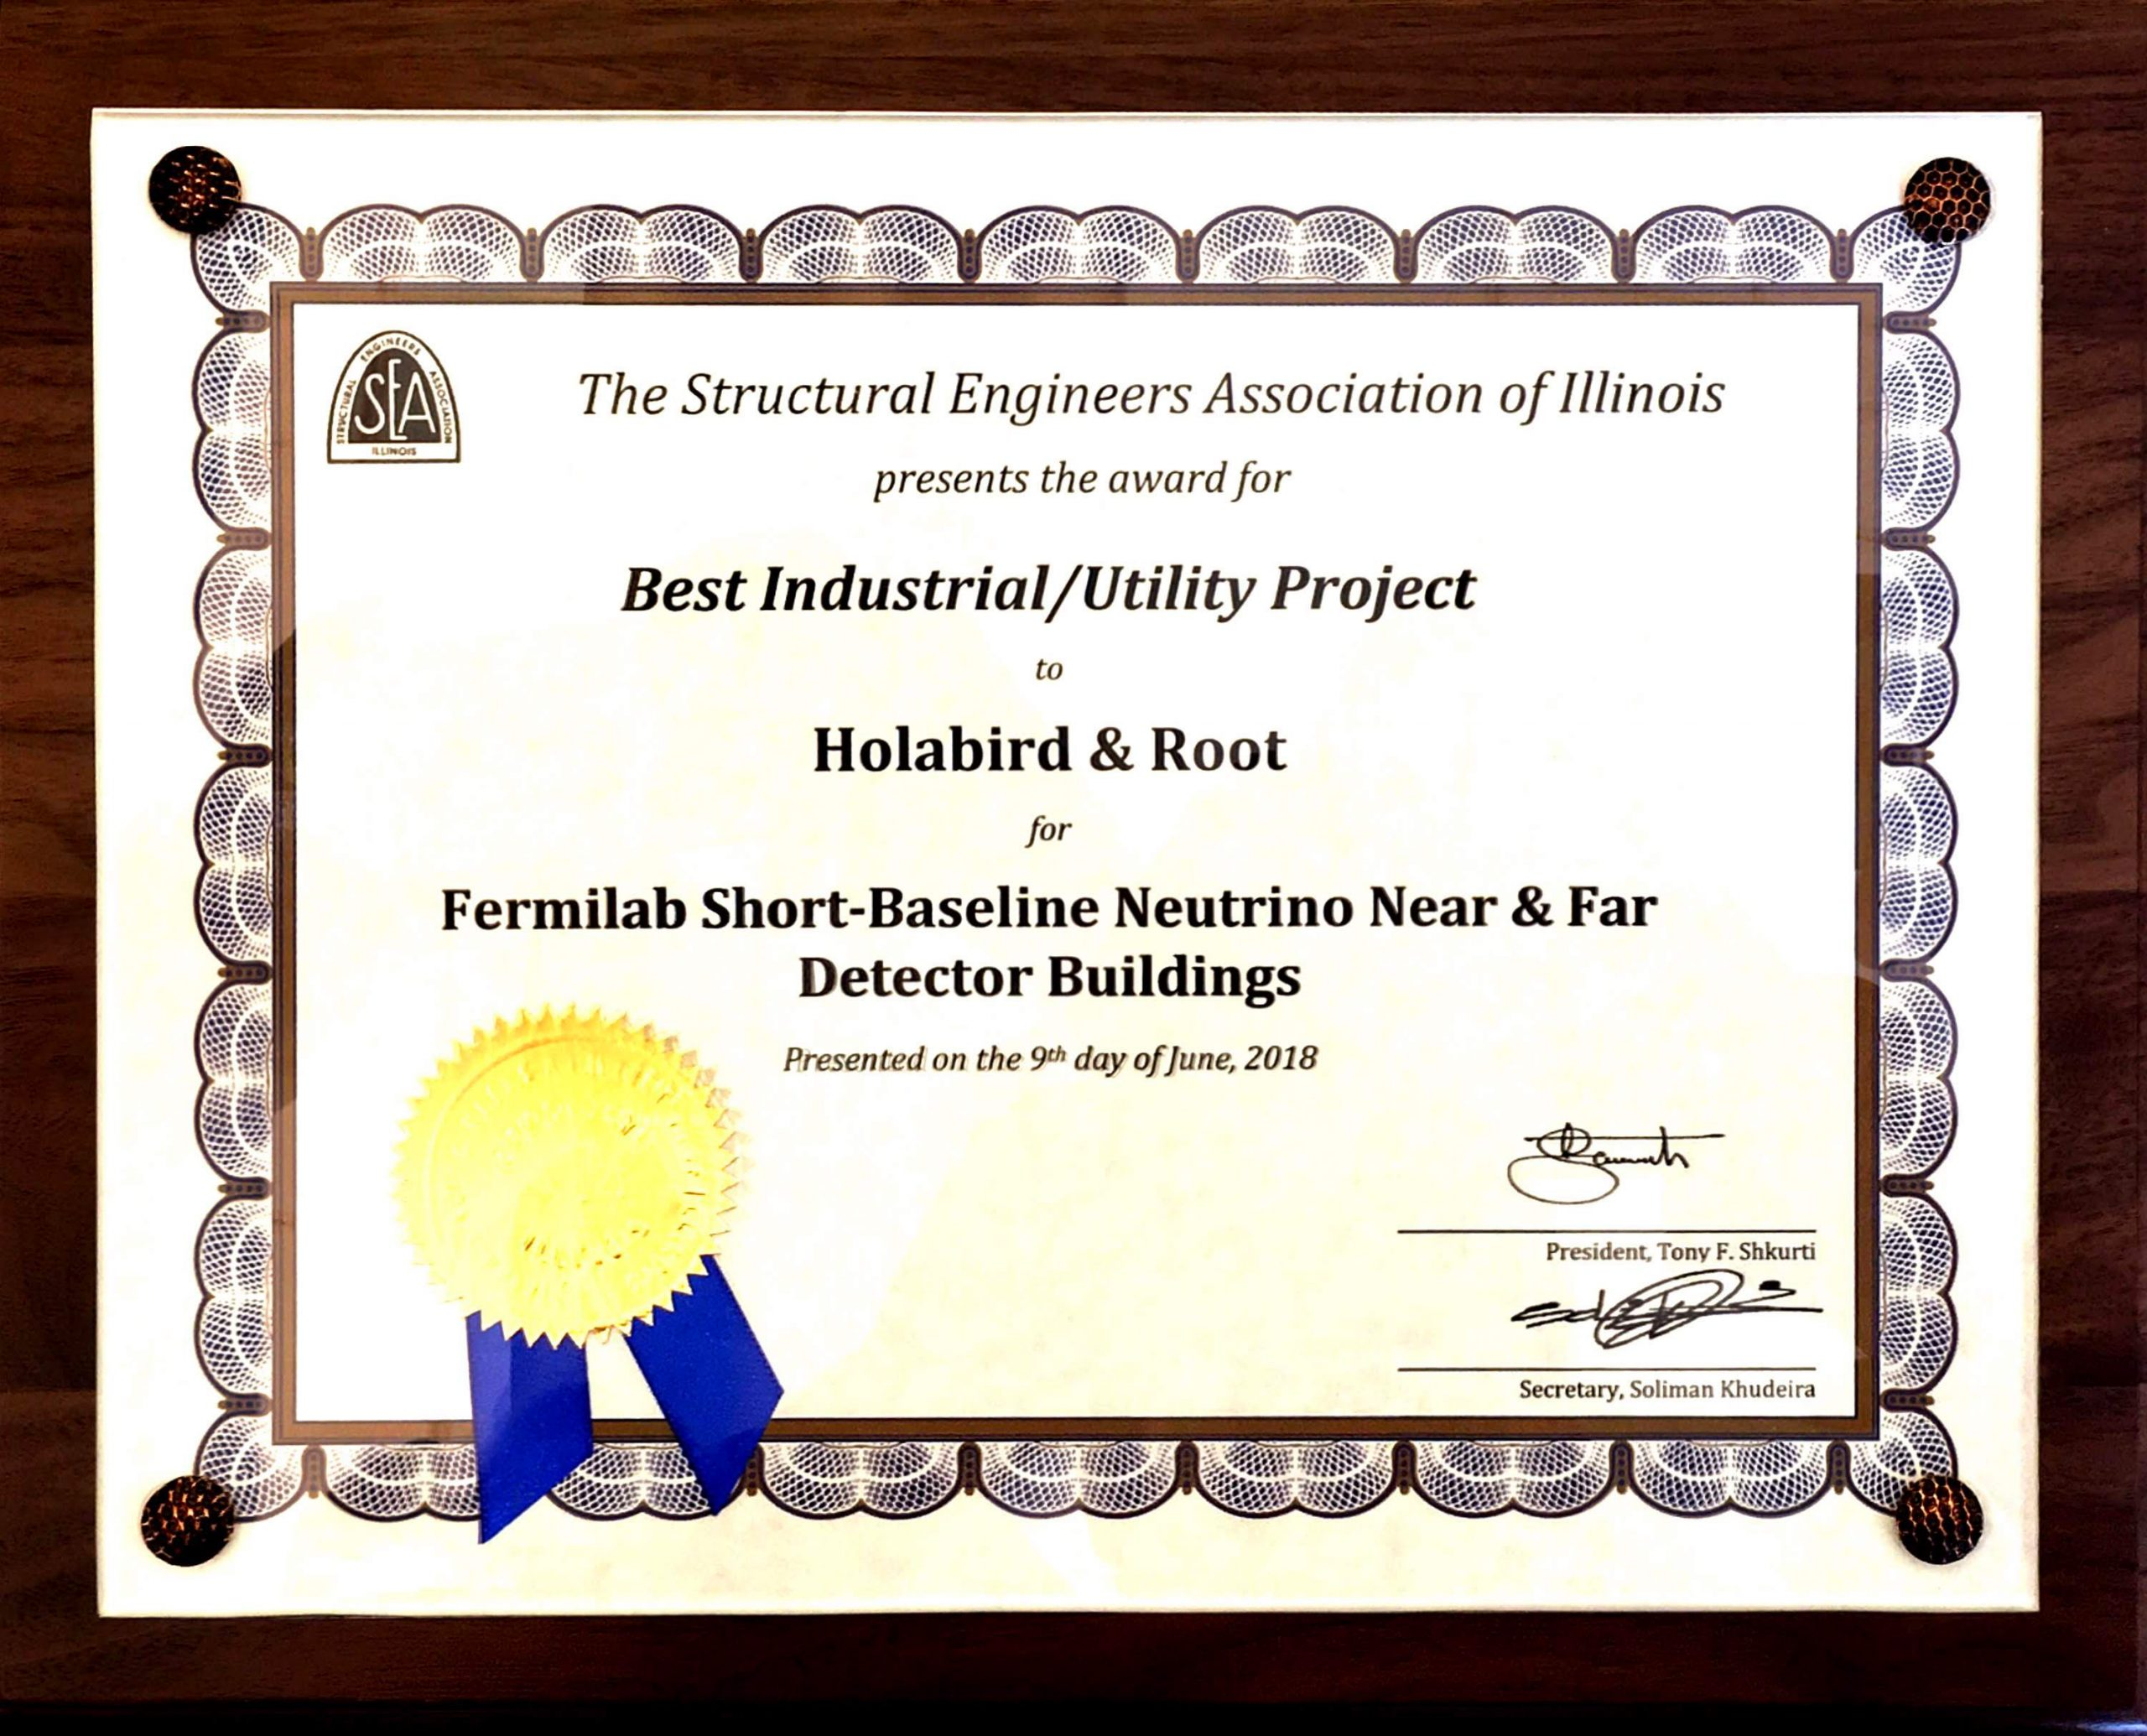 The Structural Engineers Association of Illinois gave the SBN Near and Far Detector Buildings the 2018 Excellence in Structural Engineering Awards for Best Industrial/Utility Project.